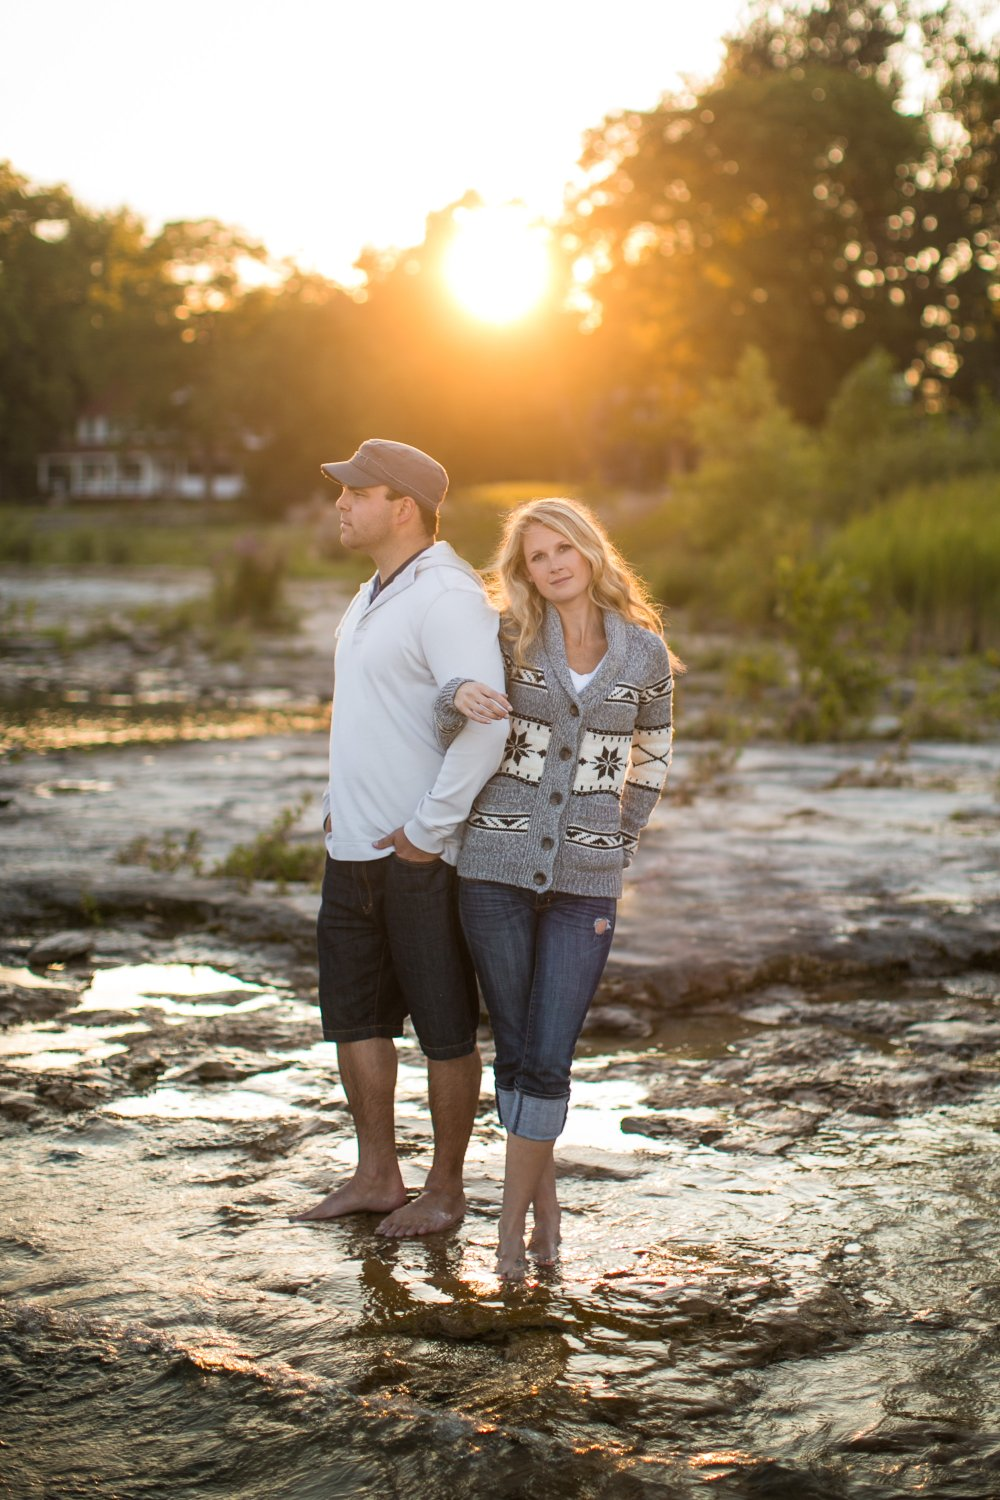 JF Hannigan Photography Engagement Session: Jenna and Brad: from shore to shore 16